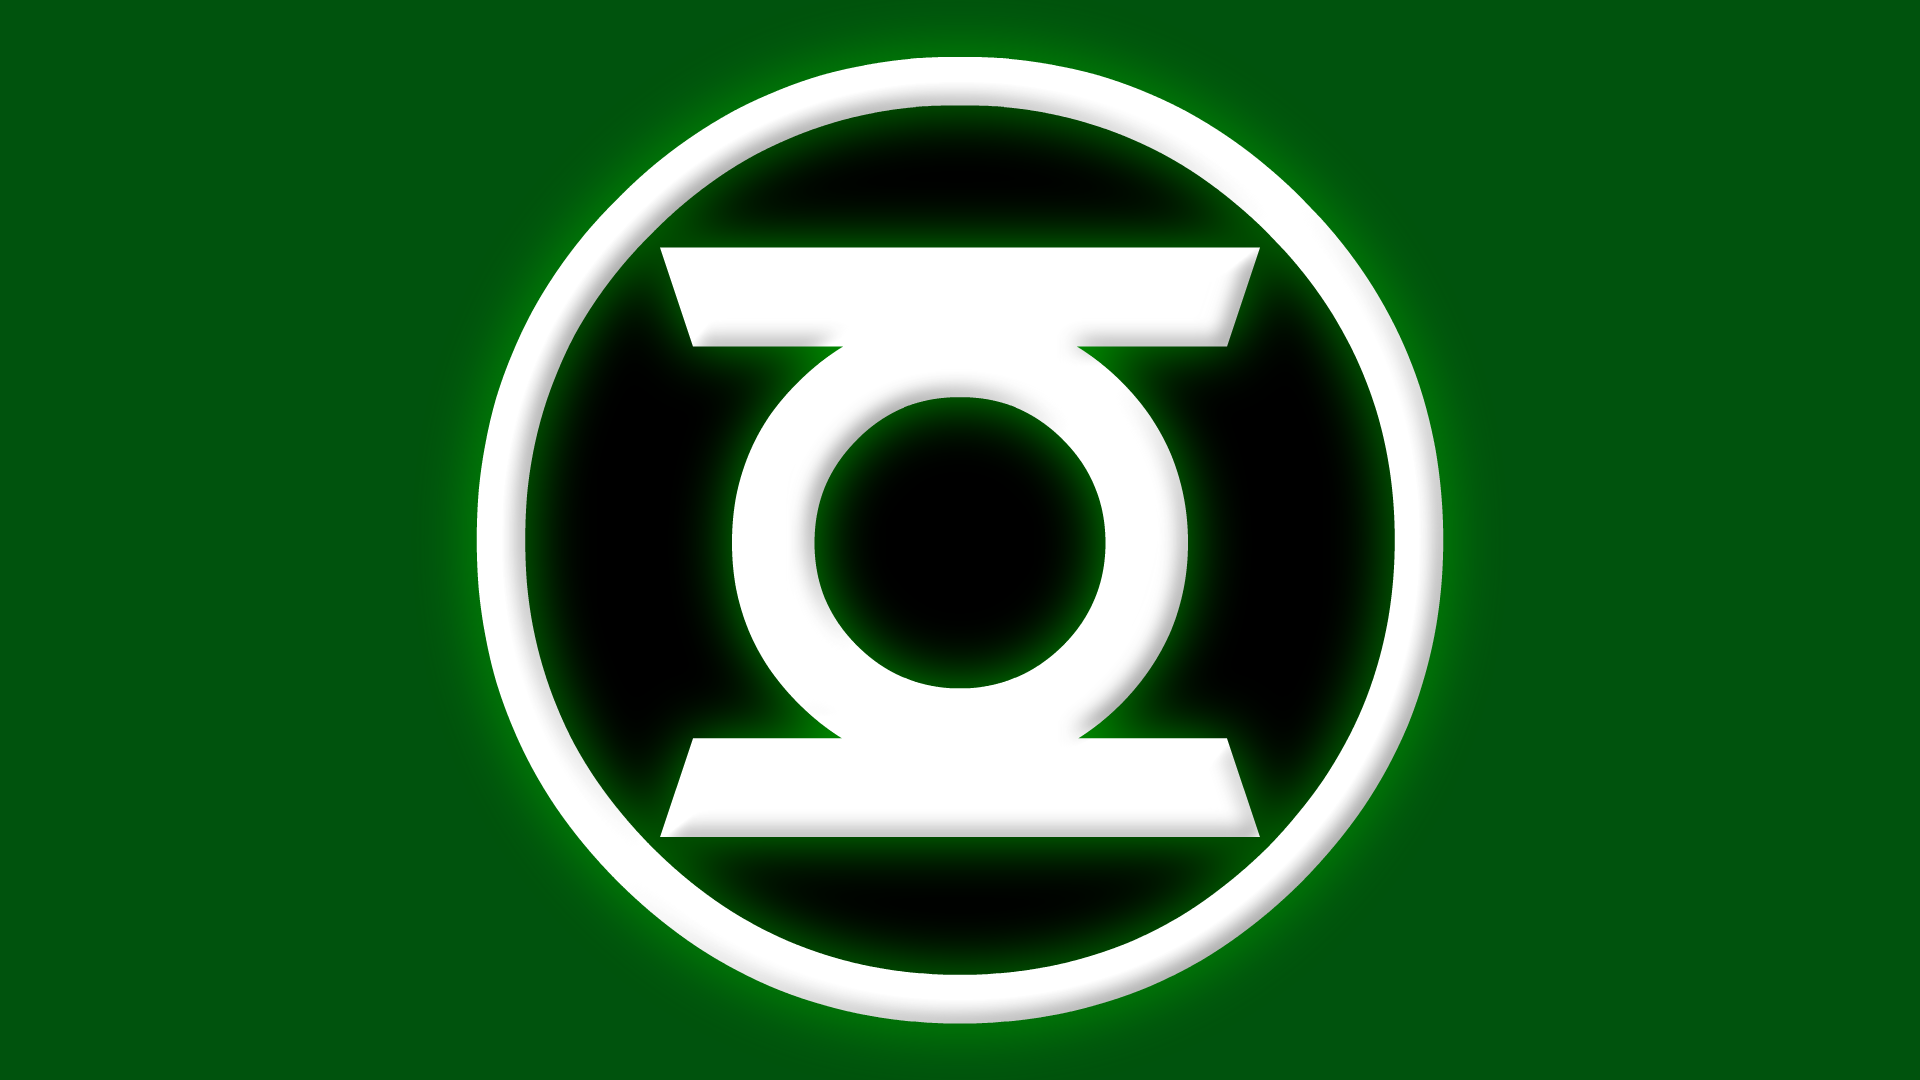 green lantern hd wallpaper | background image | 1920x1080 | id